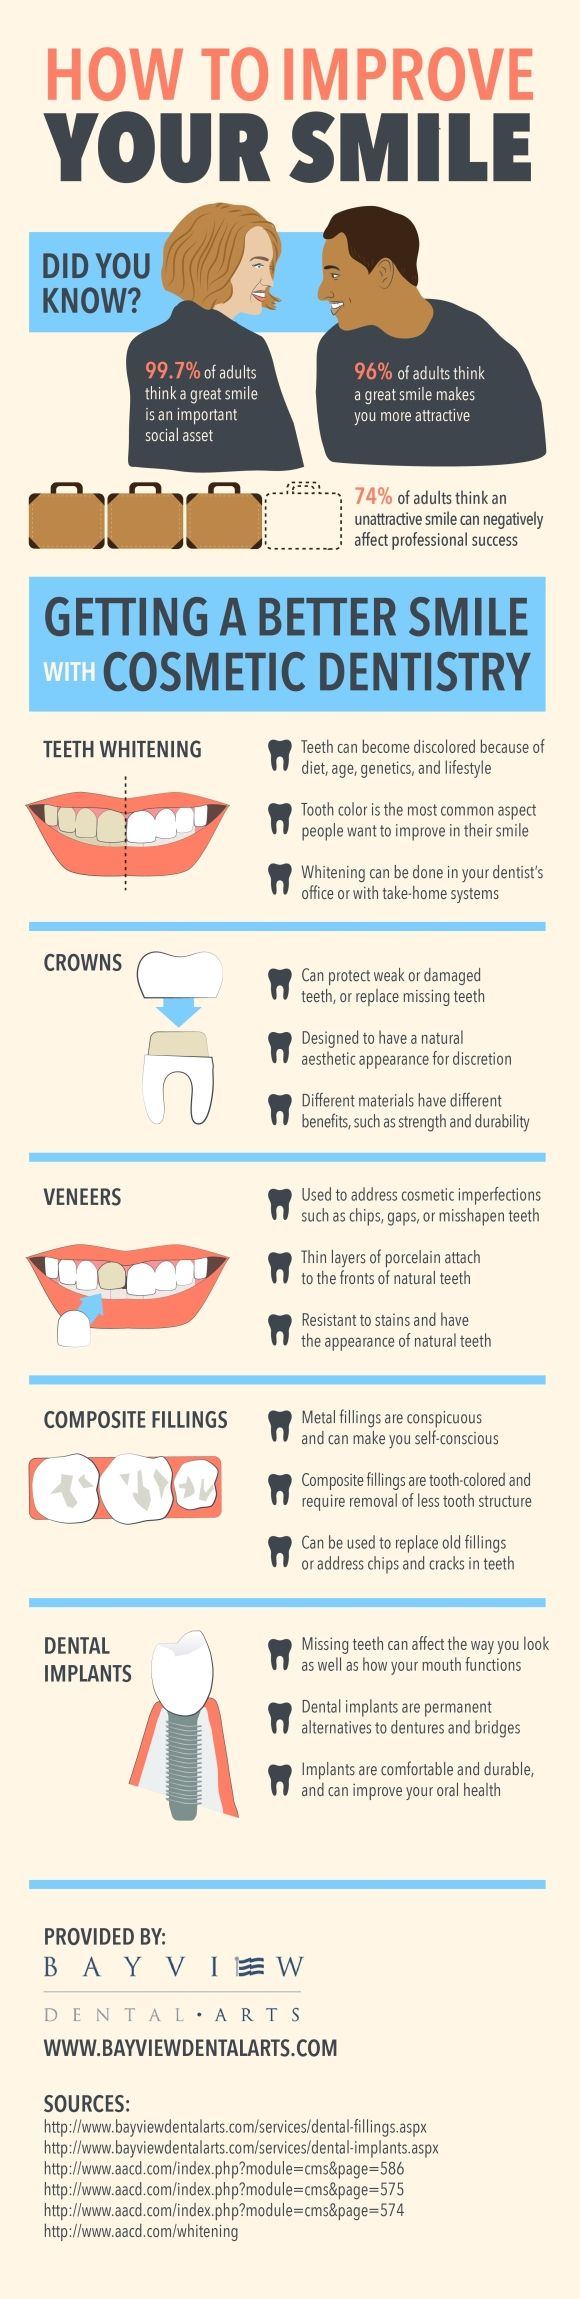 Age, diet, lifestyle, genetics—all of these factors can cause discoloration on your teeth! Luckily, teeth whitening can help you obtain a bright and beautiful smile. Get details by looking over this infographic about dental care near Naples.